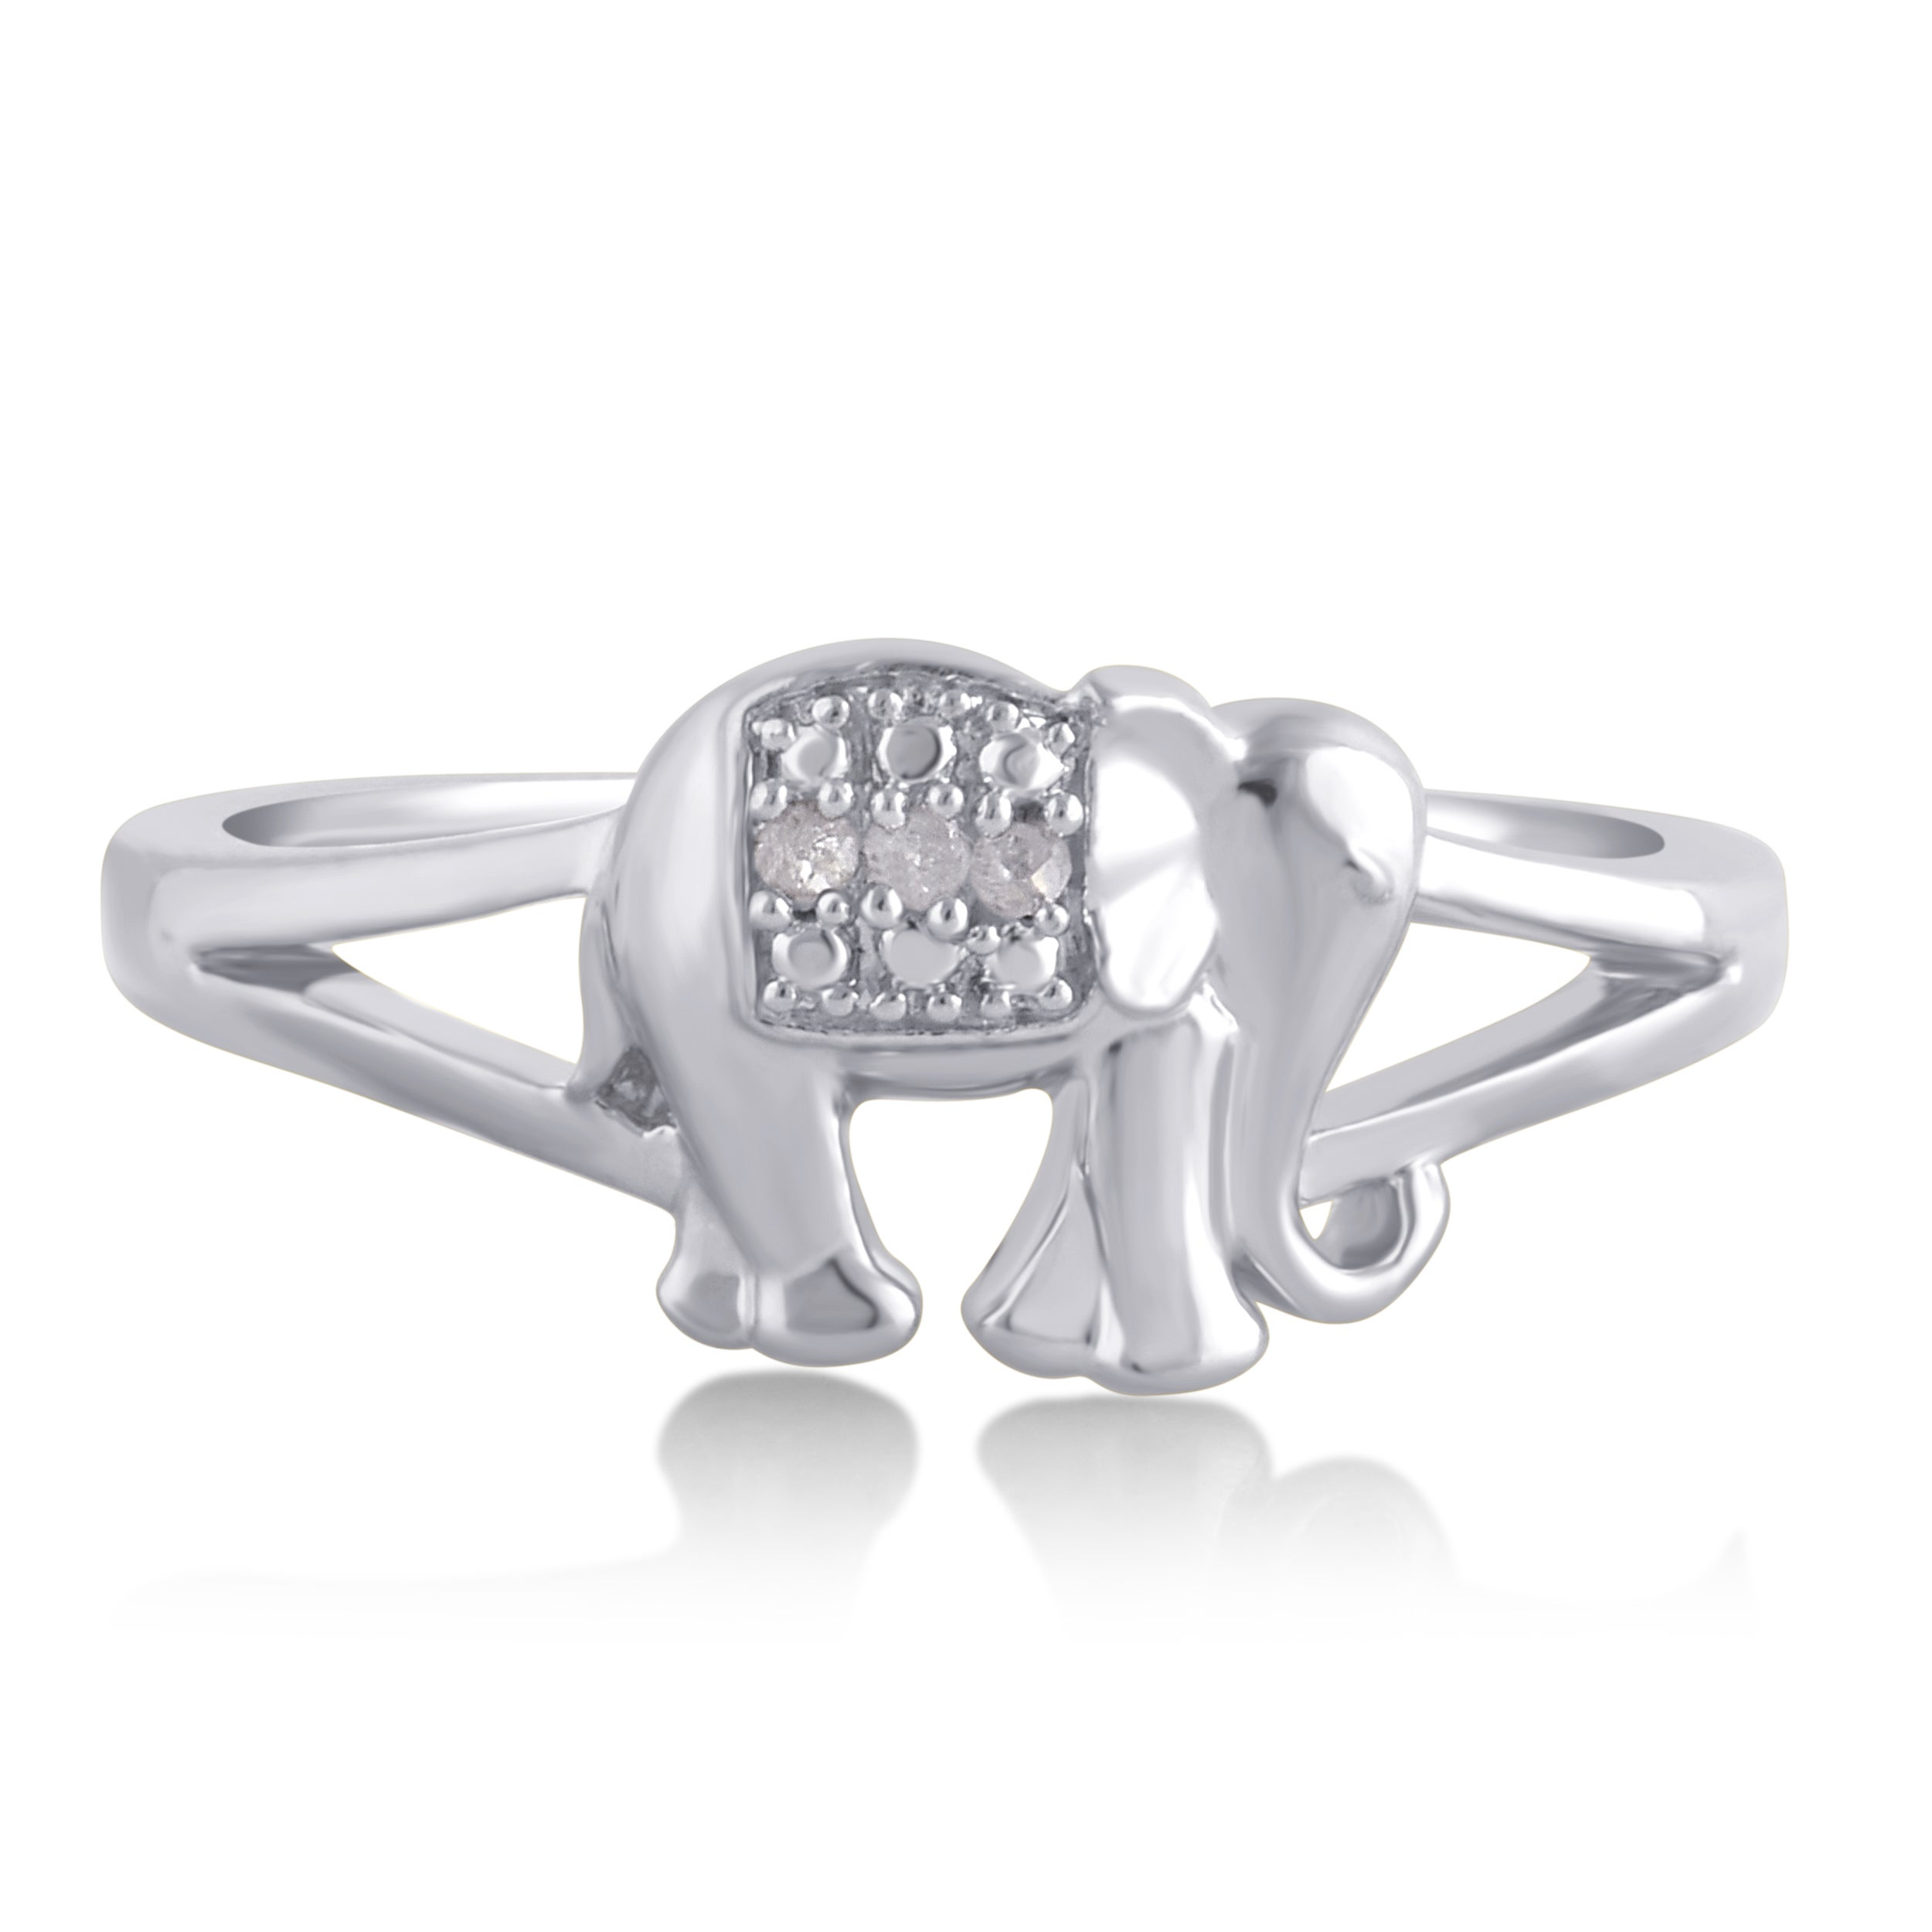 by ring sterling around caravan engagement this crafted band rings thai the of aeravida elephant details exquisite silver pr khun cut out products design family stunning o plain was showcasing elephants with march